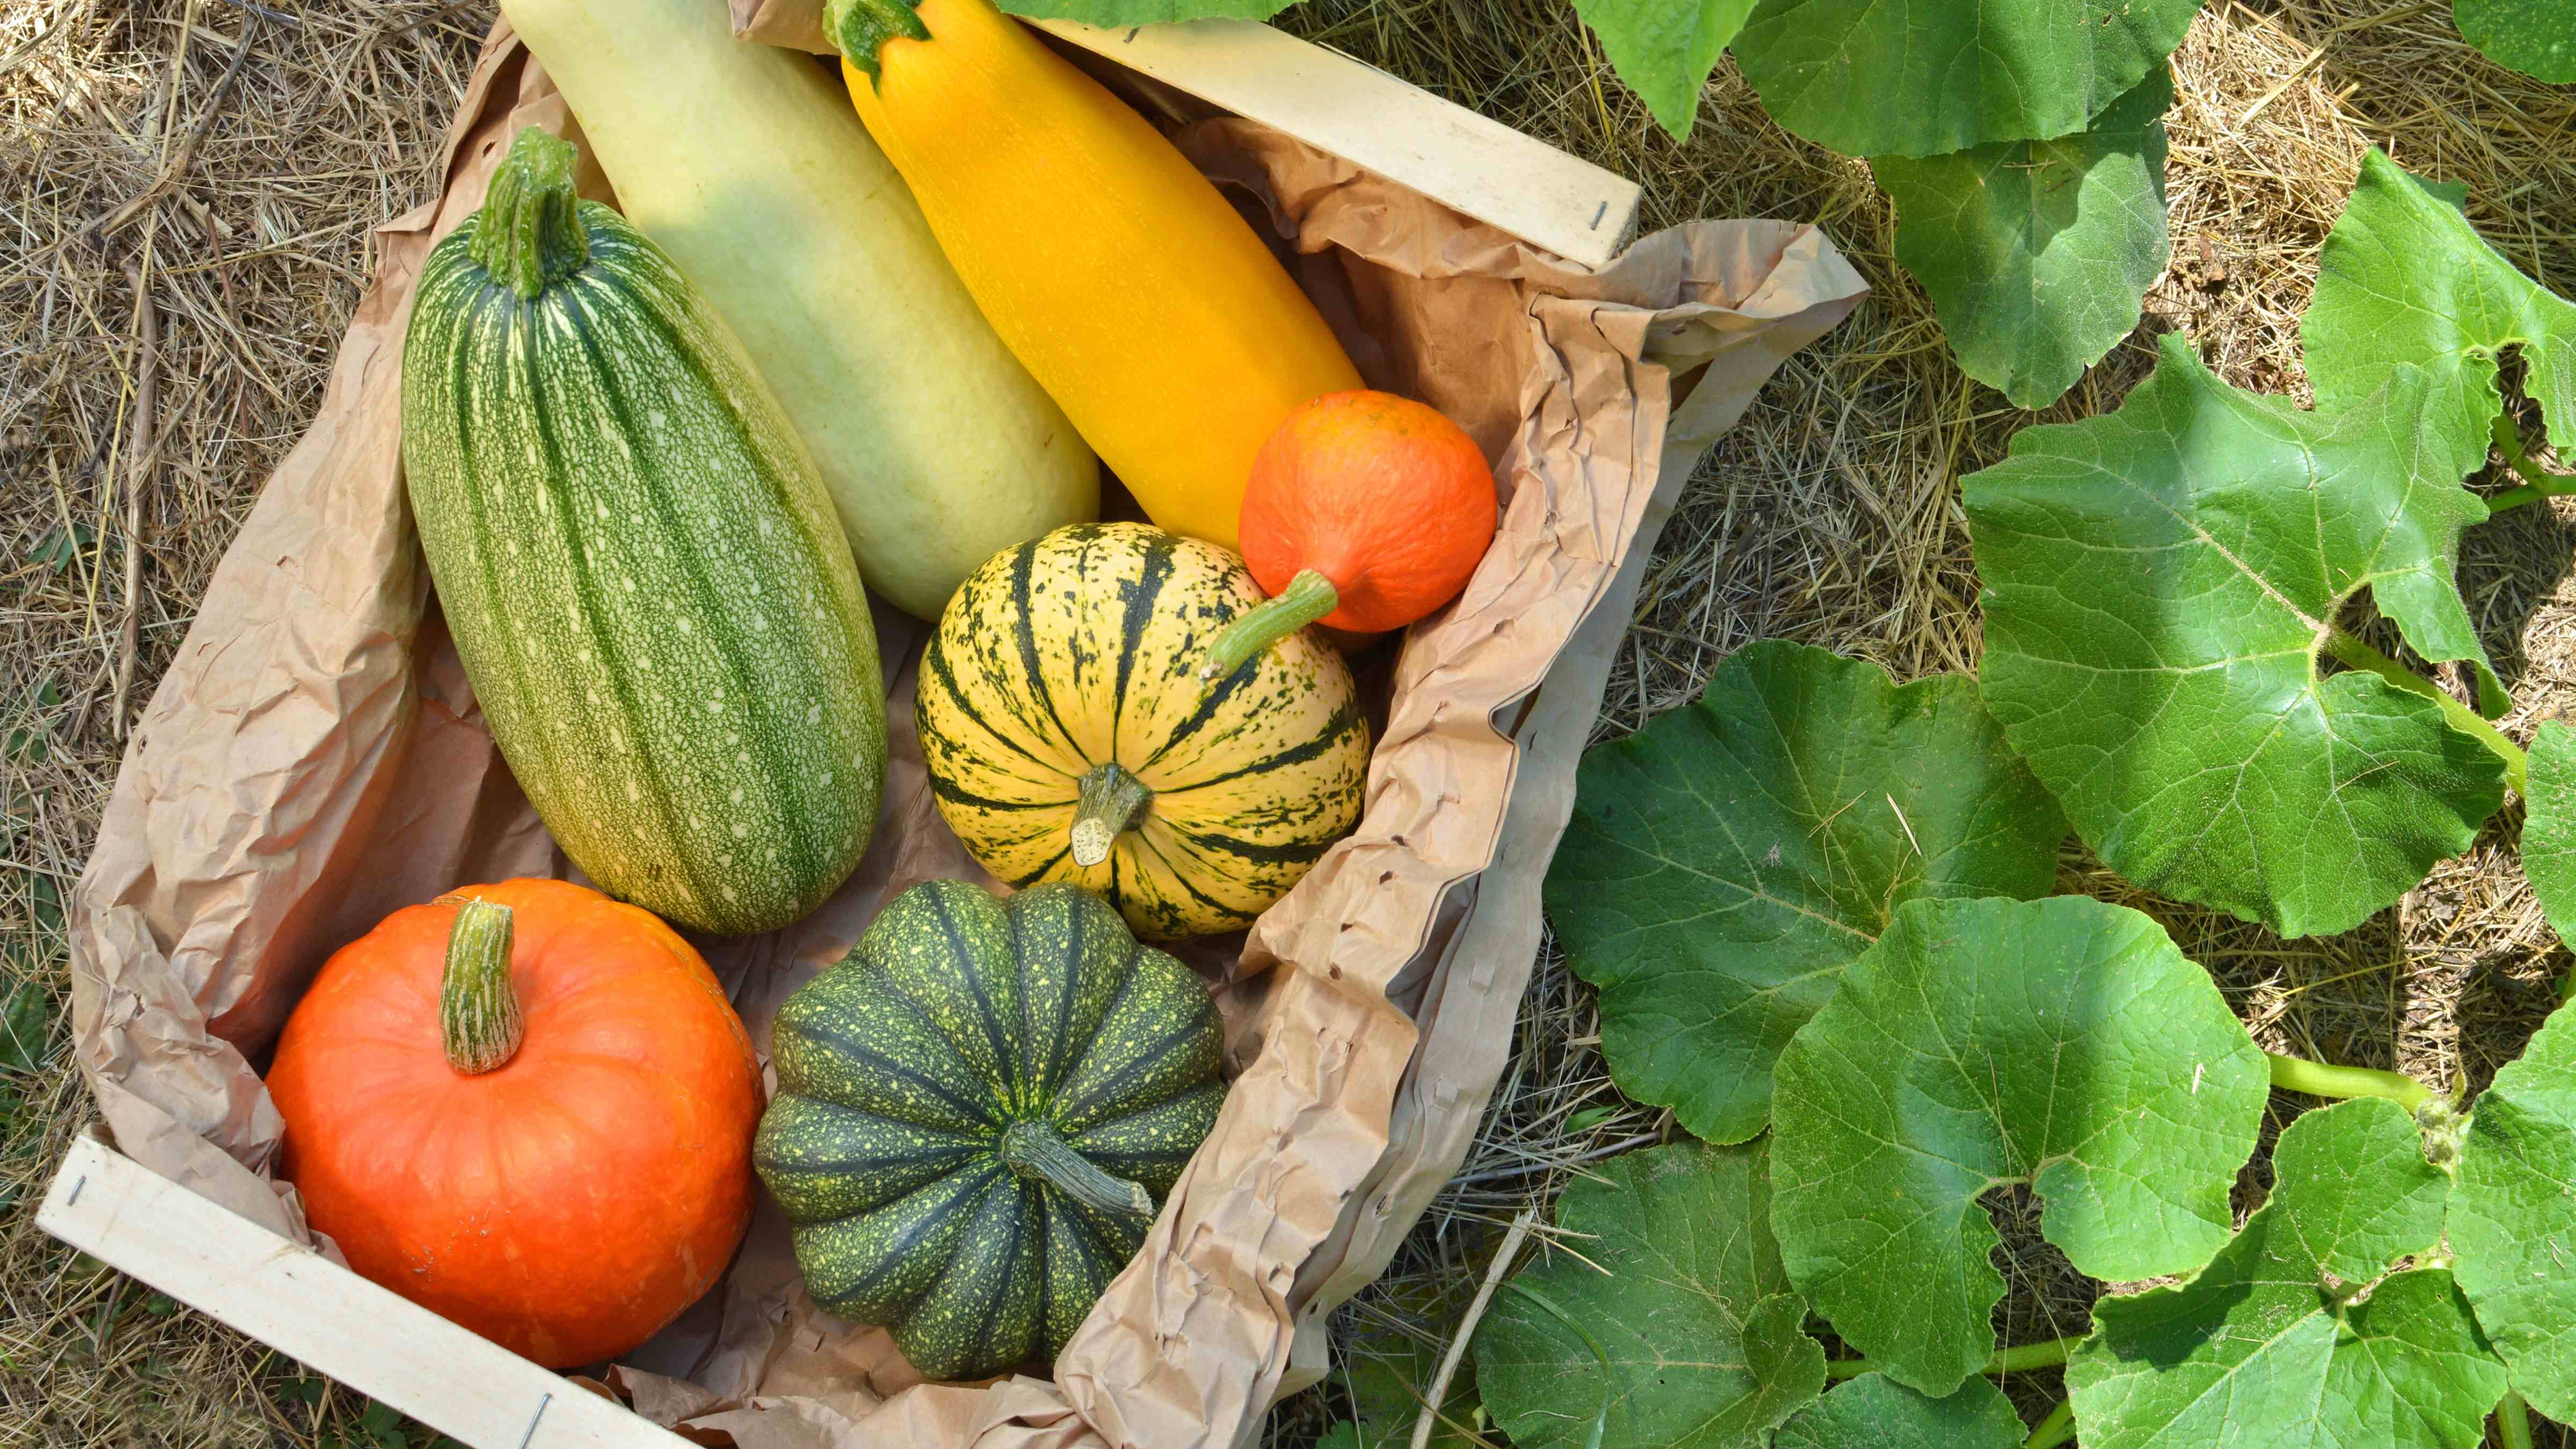 Permaculture gardening: the principles and benefits